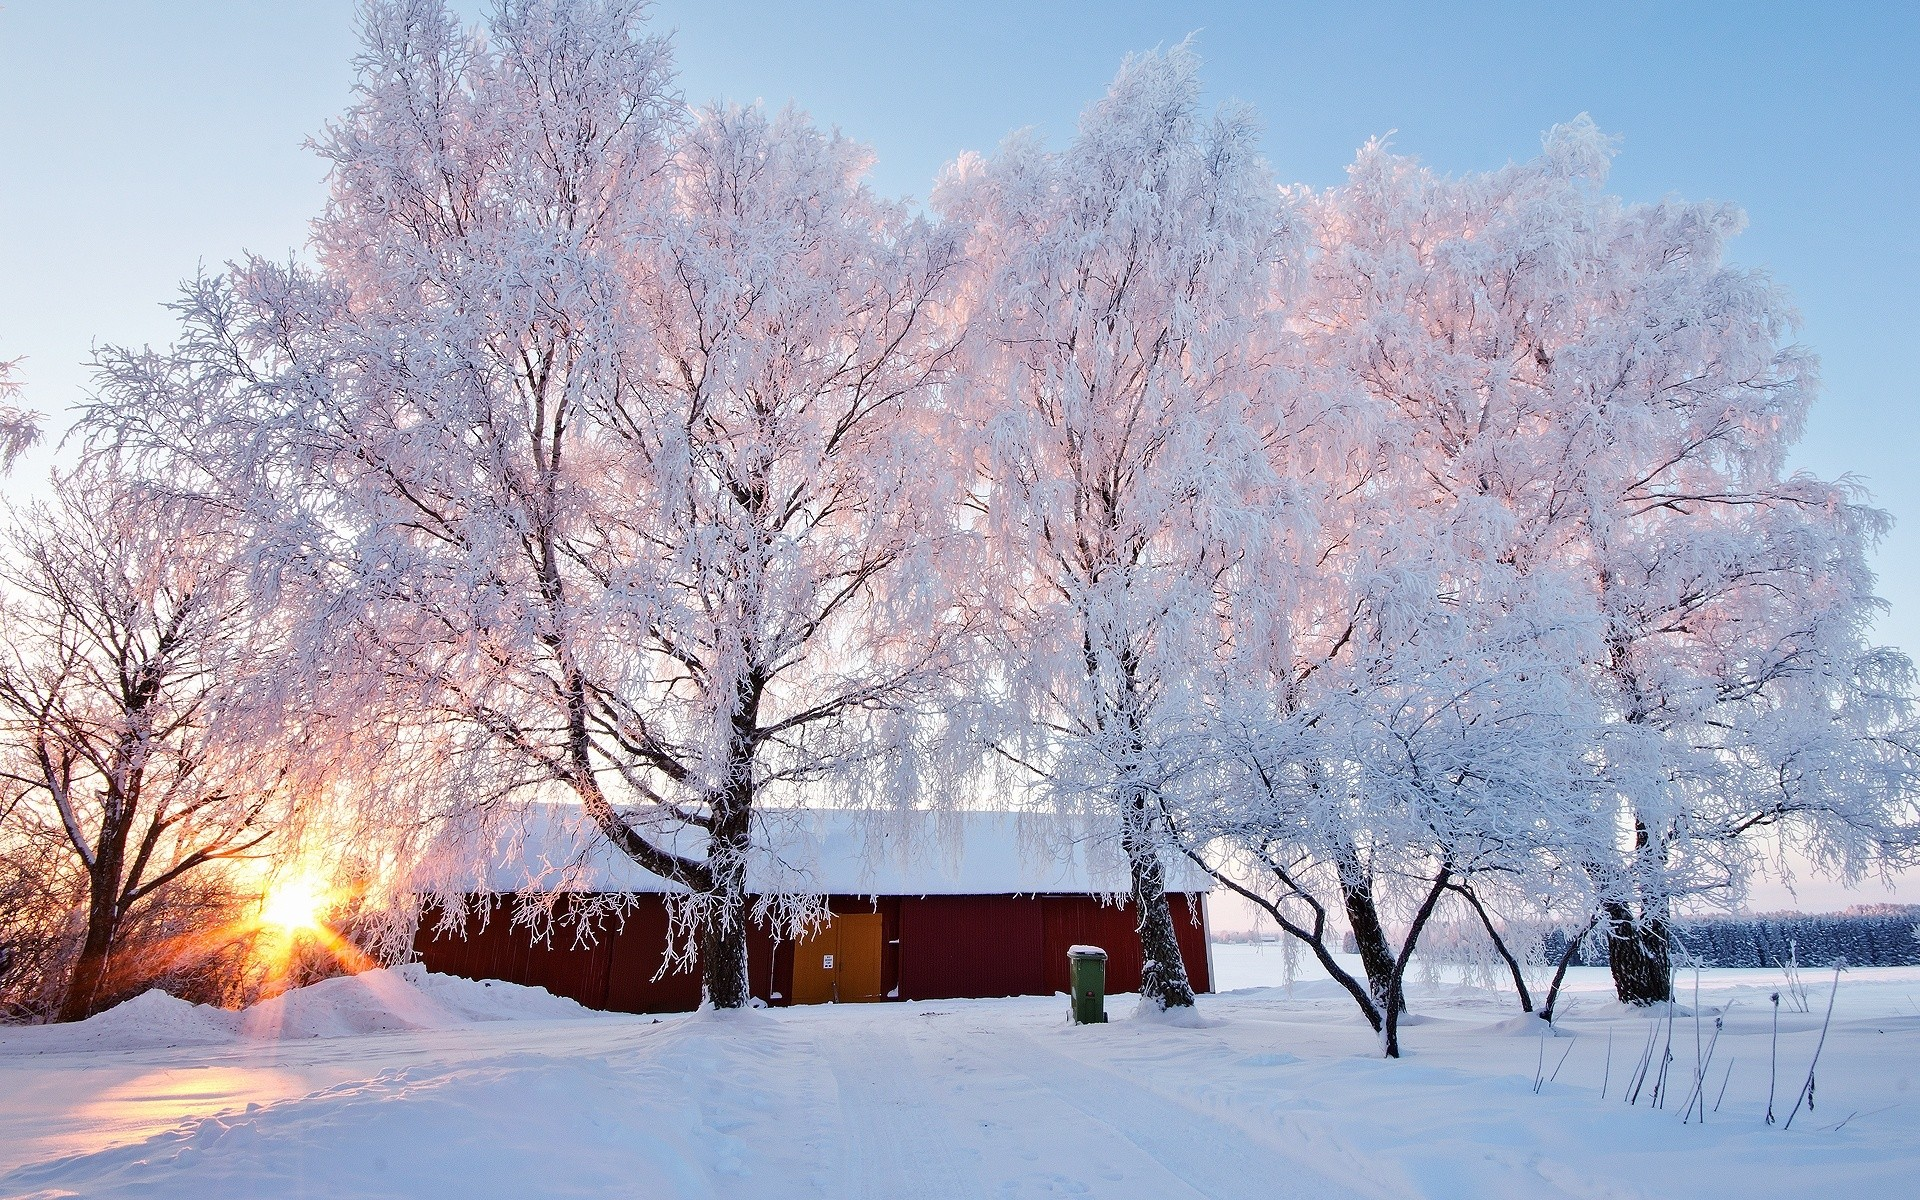 General 1920x1200 winter barn trees frost cold sunlight outdoors snow